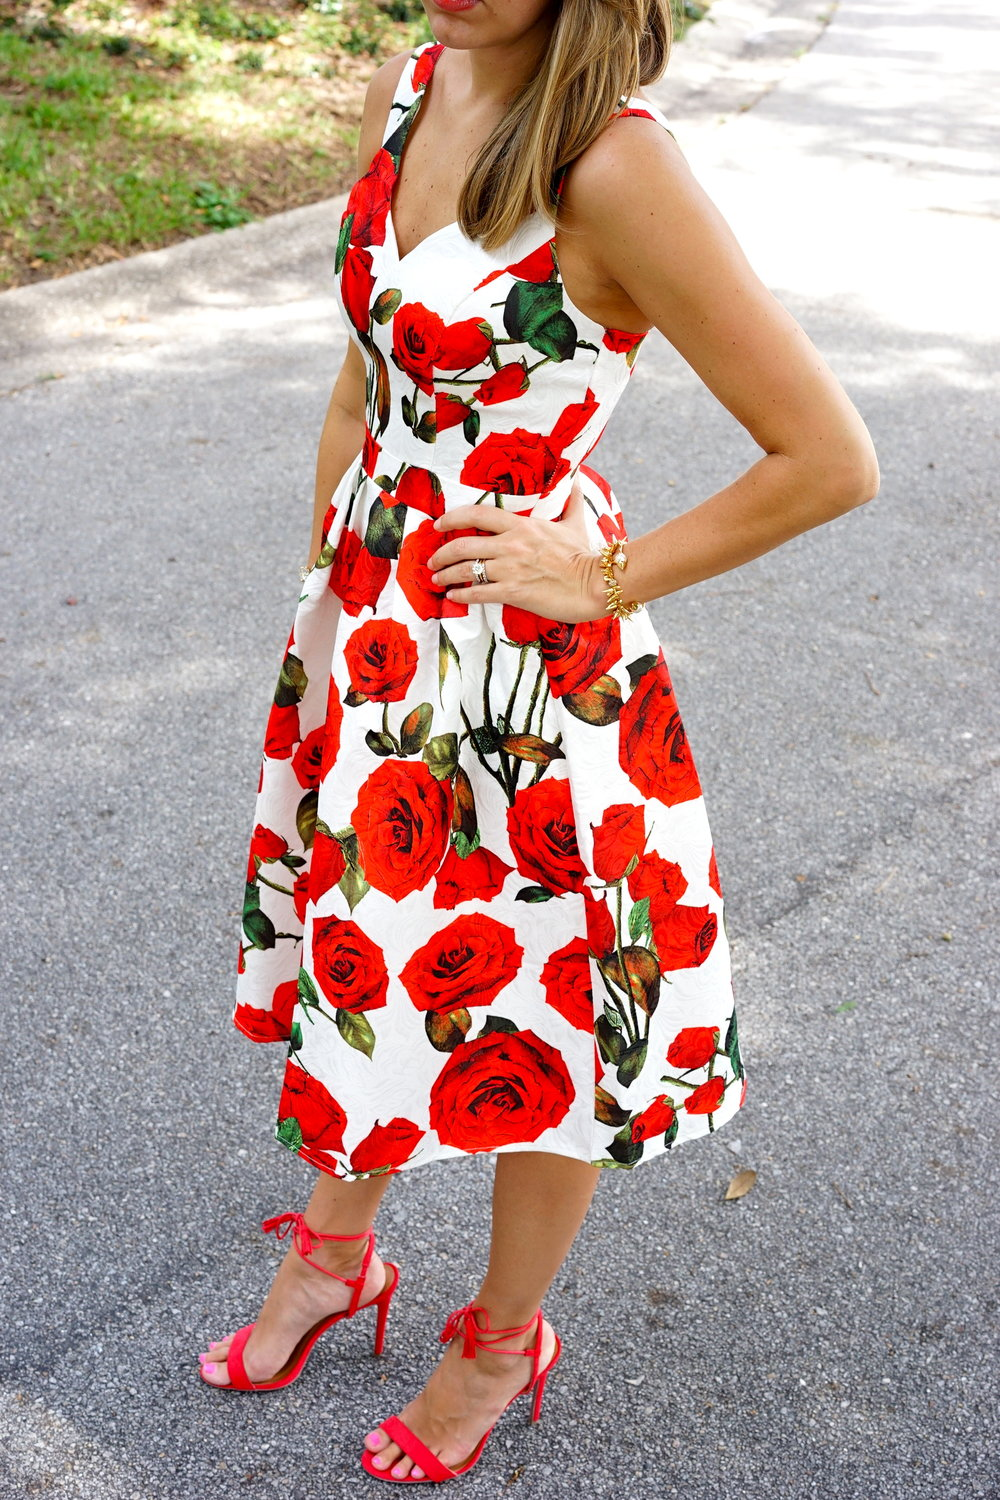 Today&39s Everyday Fashion: Red Rose Dress — J&39s Everyday Fashion